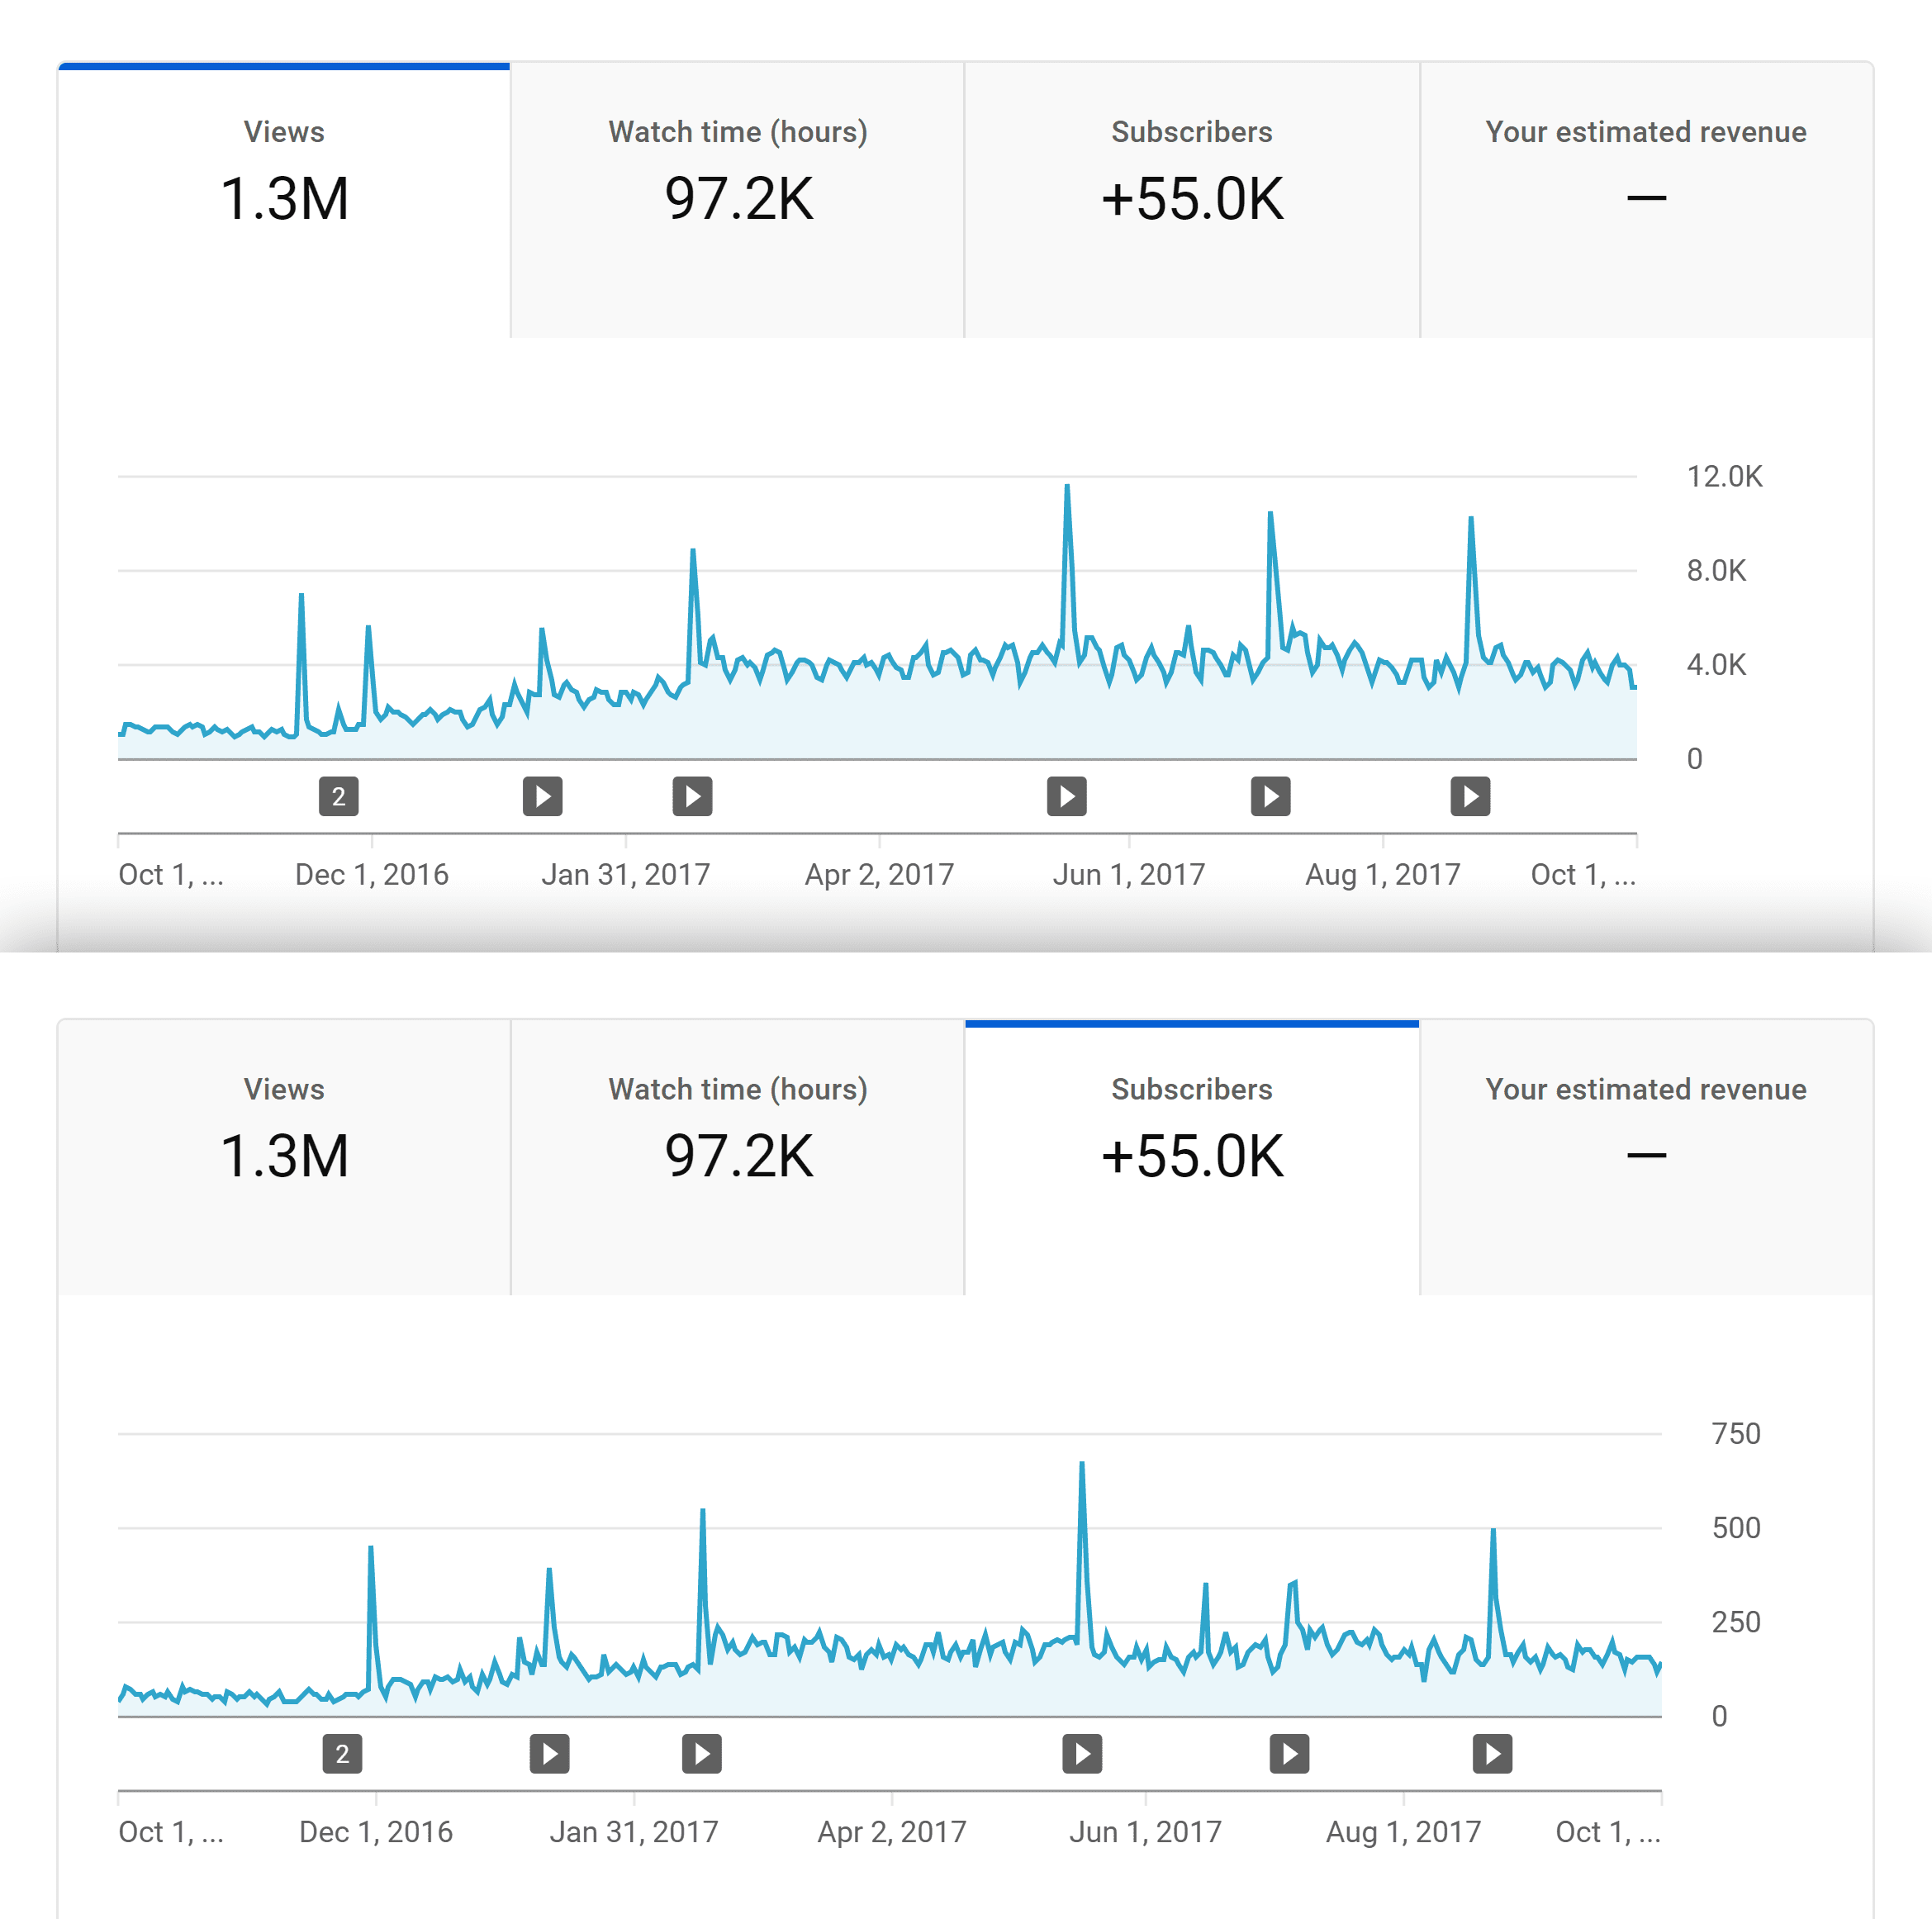 Views and subscribers after update